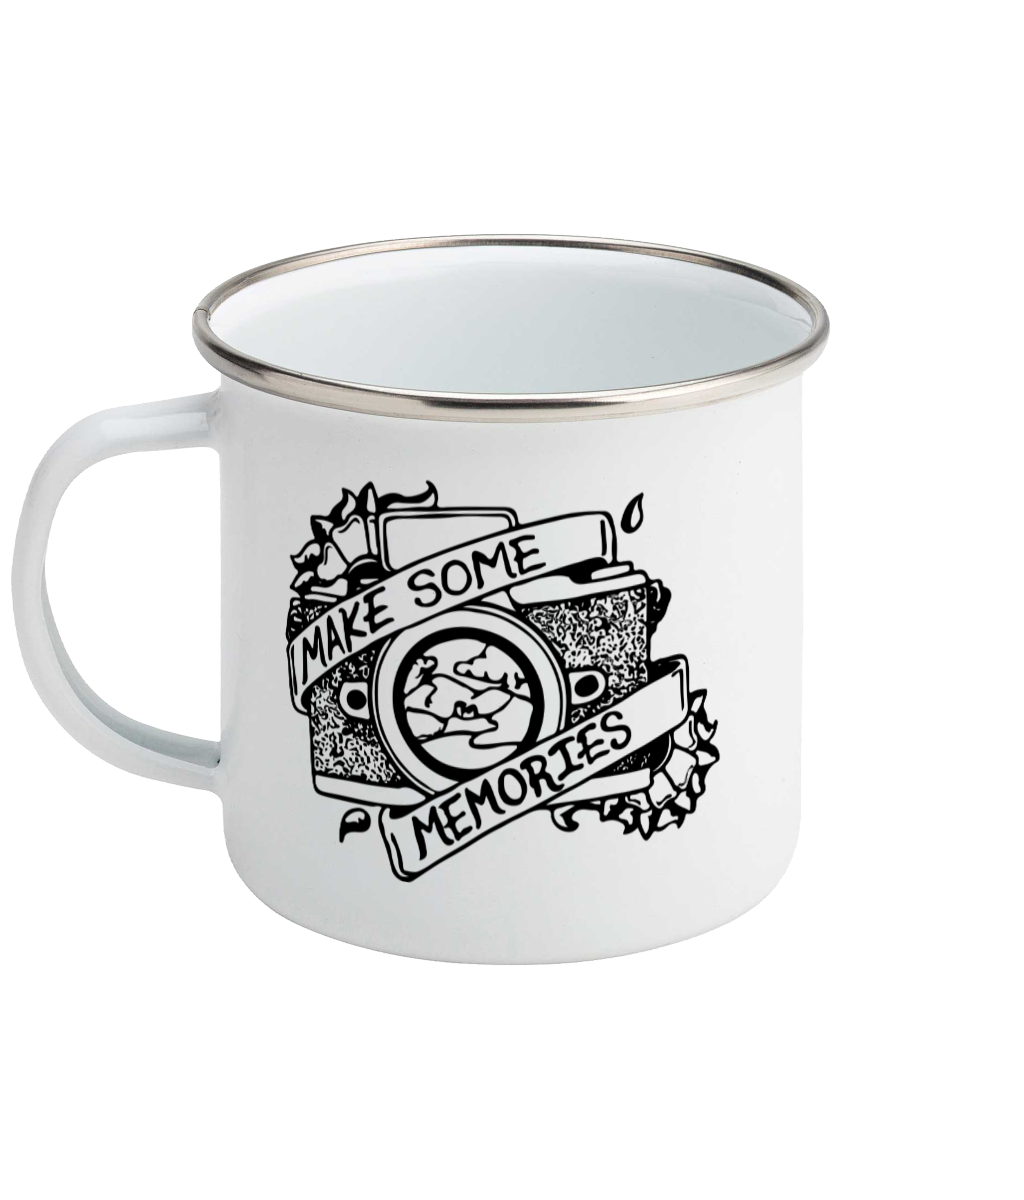 Make Some Memories - Enamel Mug, Suggested Products, Pen and Ink Studios Adventure Clothing